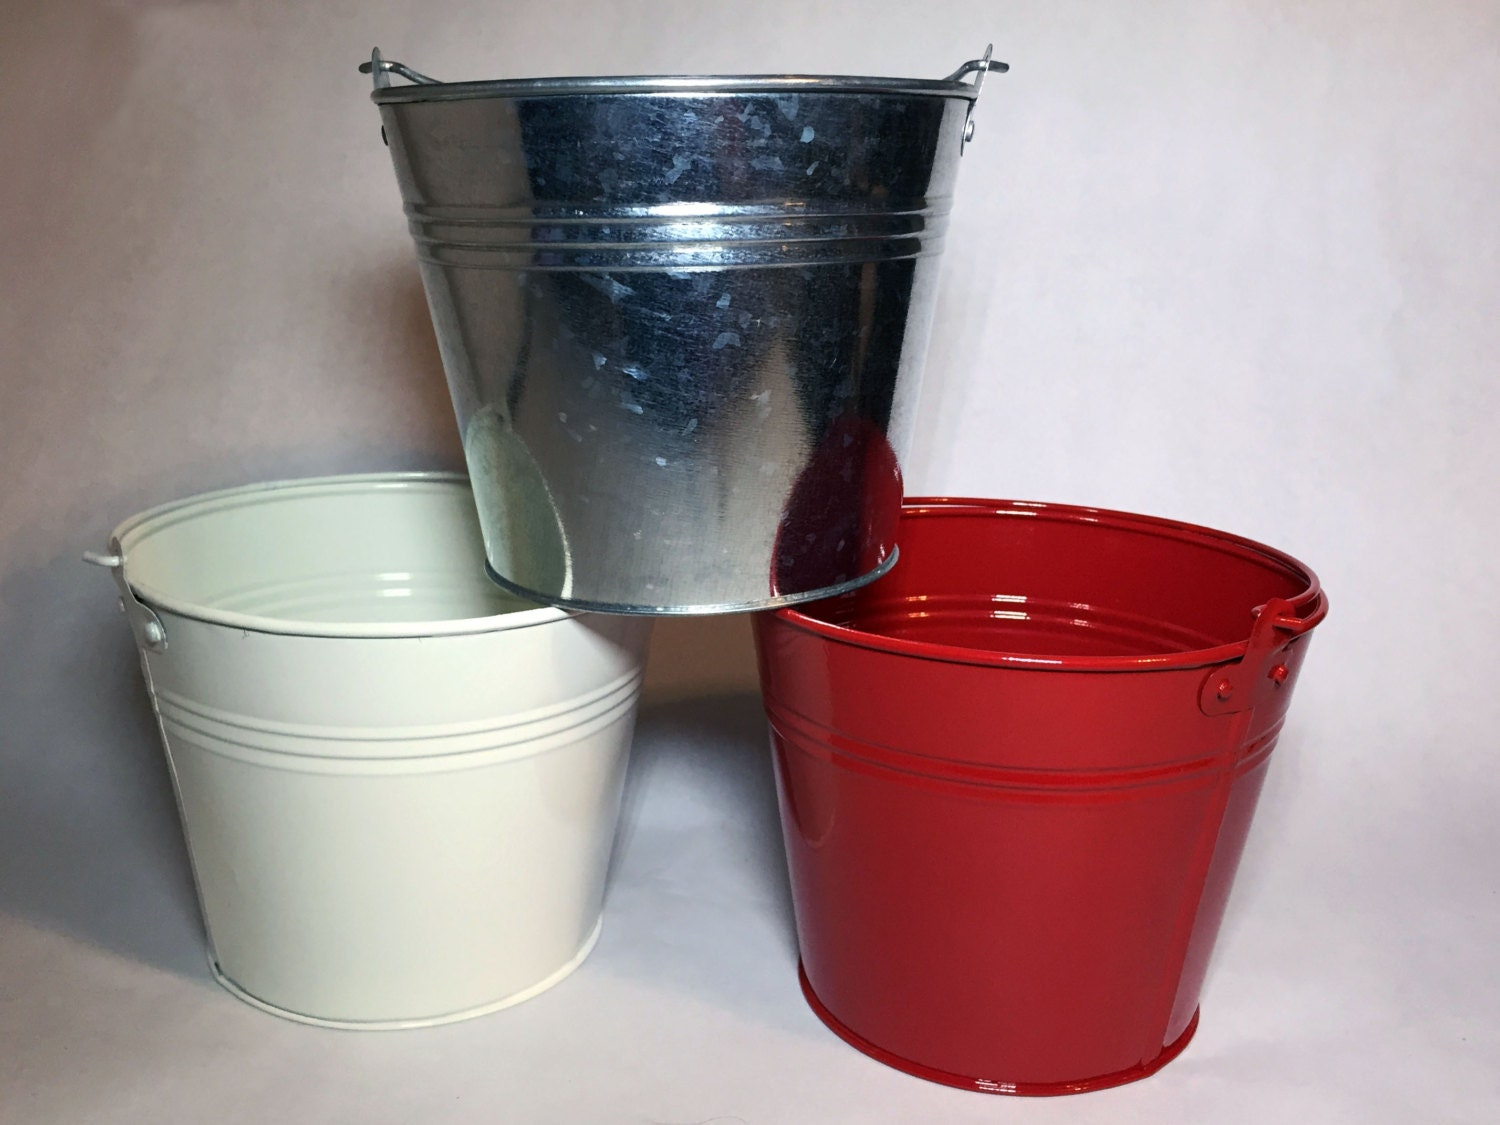 China manufacturing industries are full of strong and consistent tenbadownload.ga Elevator Manufacturer HDPE Plastic Elevator Buckets.